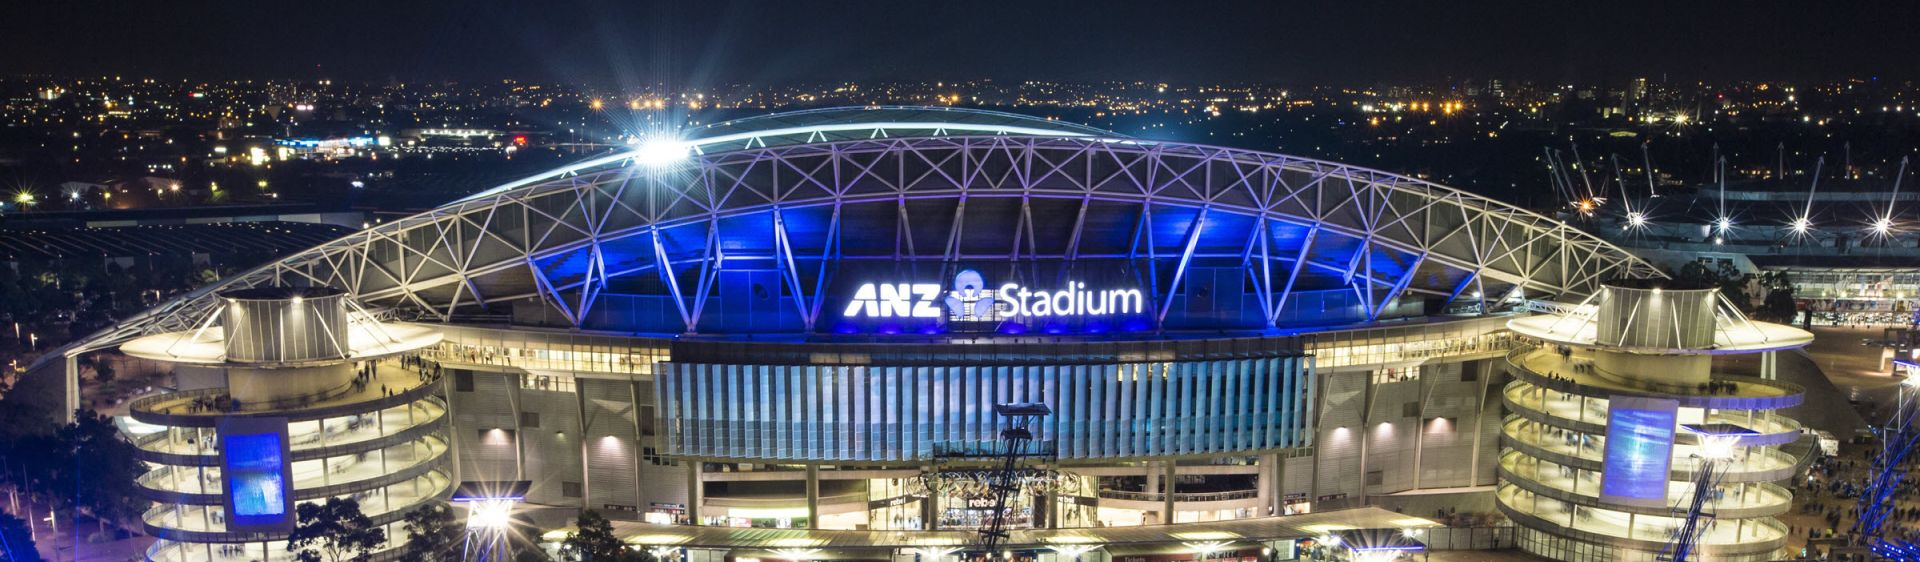 State of Origin Activation, ANZ Stadium